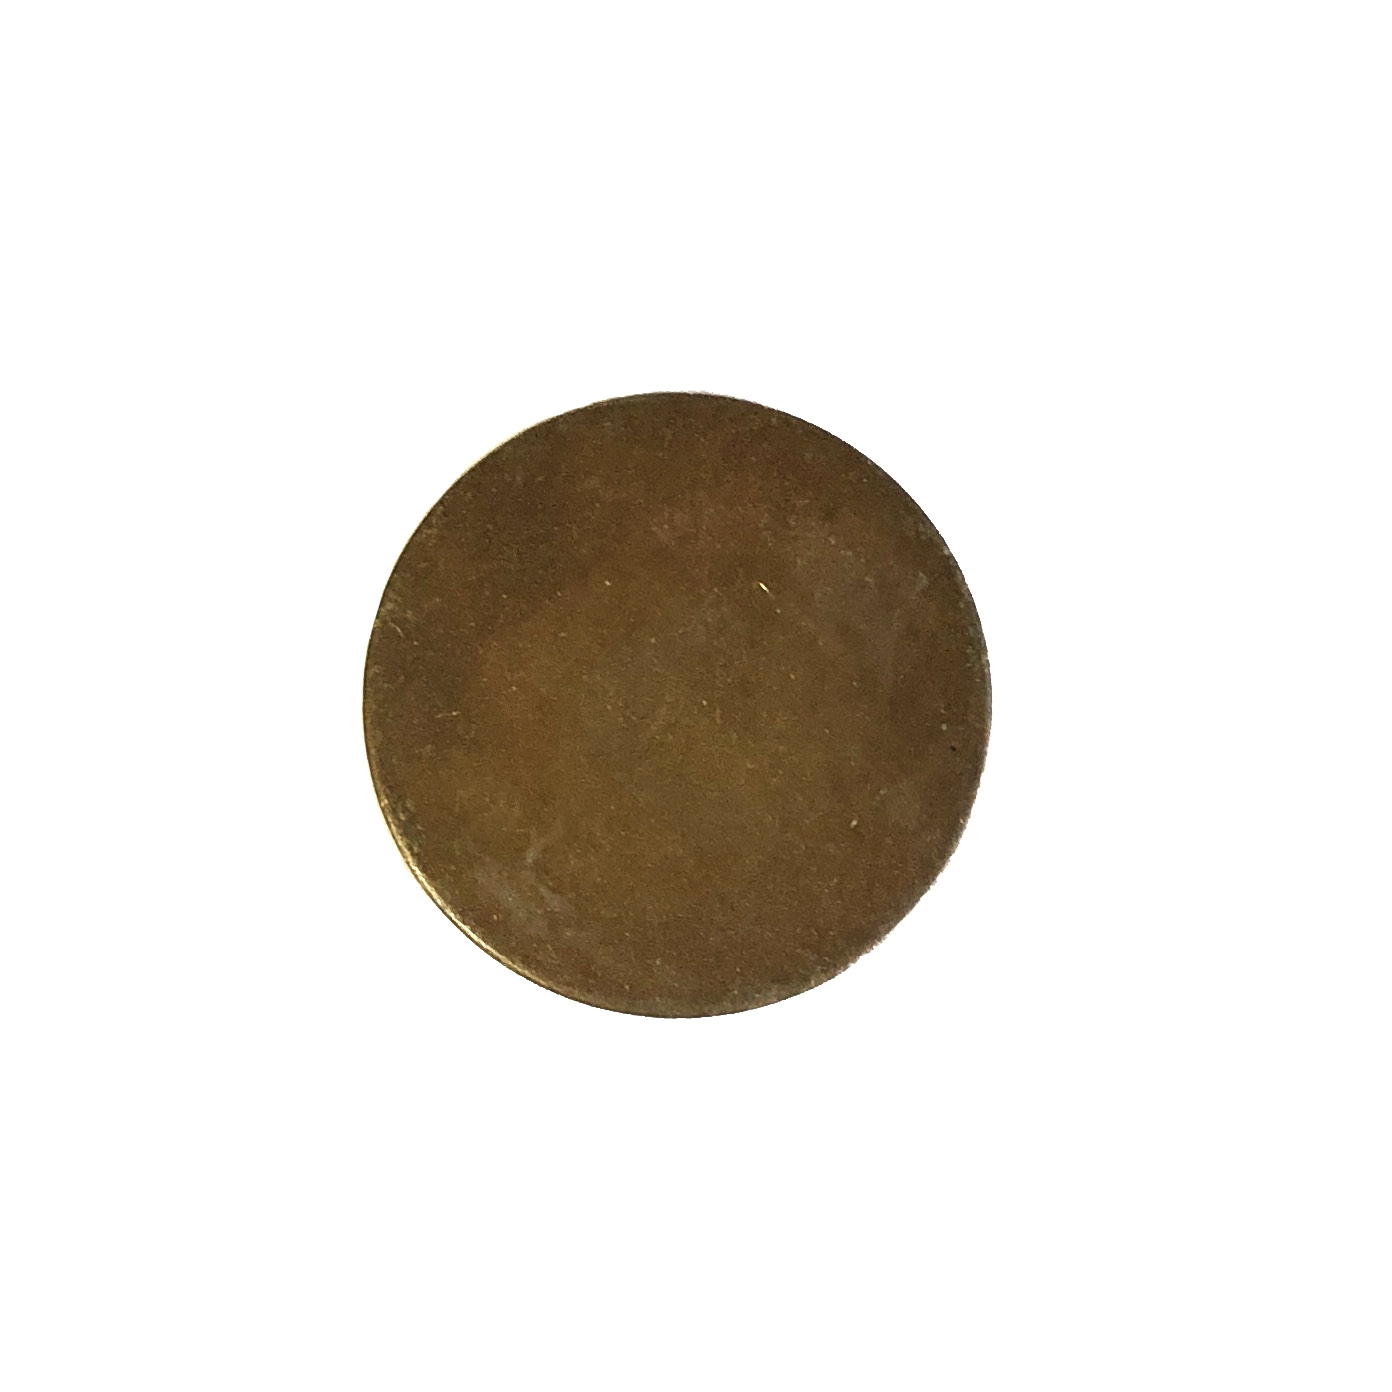 jewelry blank, round base, chocolate brass, B'sue Boutiques, nickel free, US made, vintage supplies, jewelry making, jewelry supplies, brass blanks, round jewelry blanks, round, base, brass, jewelry findings, 22mm, round blank, 09966